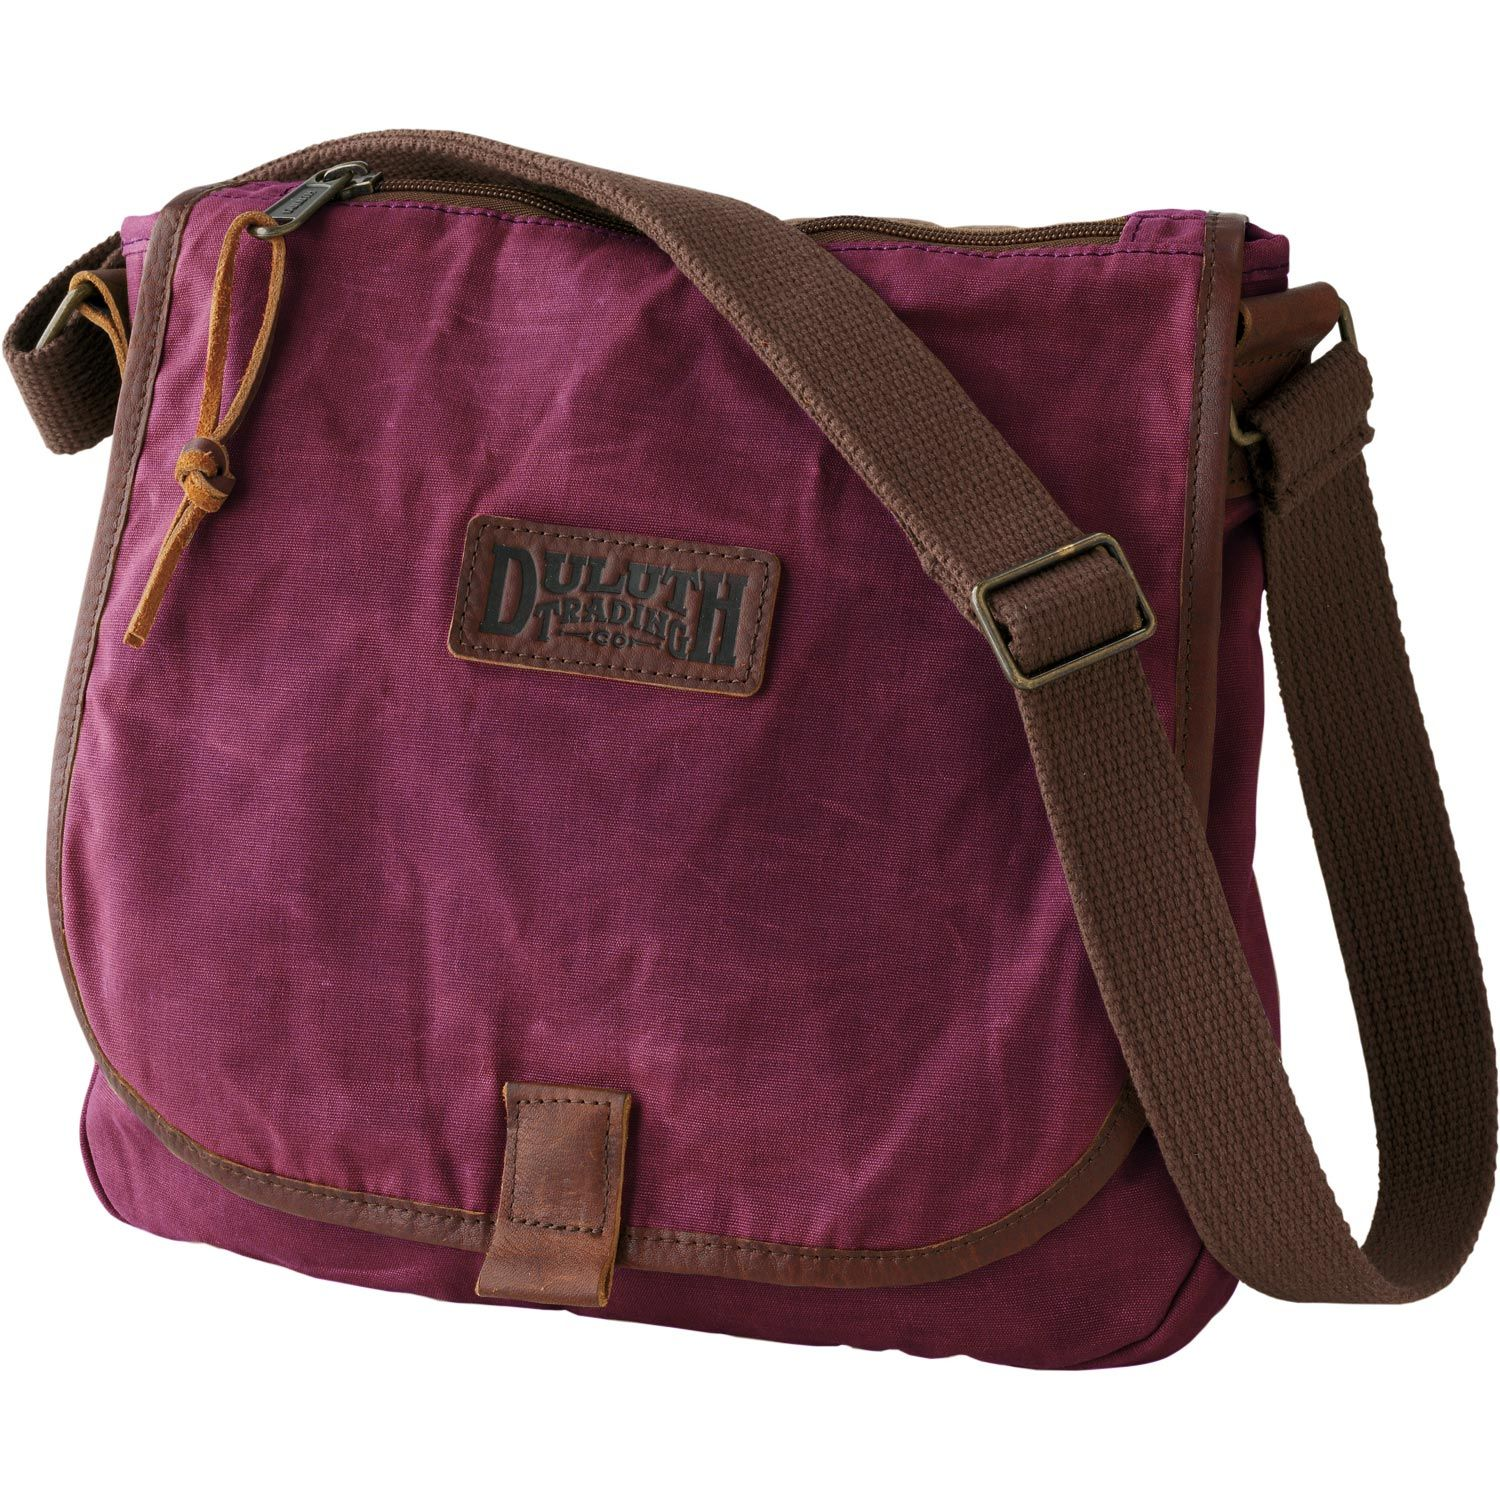 091a9948e3a The women s Oil Cloth Sling Bag from Duluth Trading Company lets you  venture forth without fear of downpours or dumped coffee. Skip the wallet  and stash ...